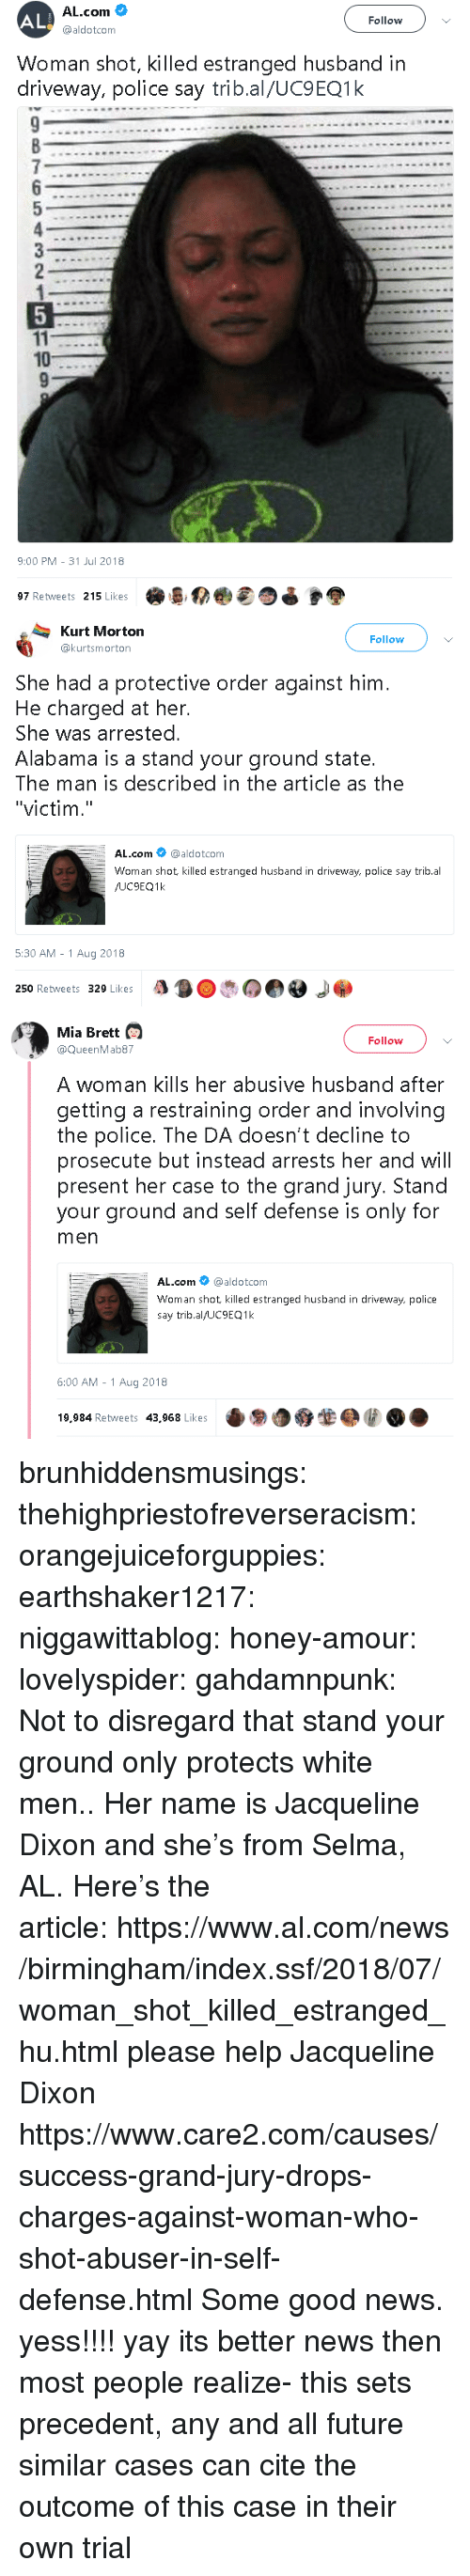 """Future, News, and Police: AL  AL.com  @aldotcom  Follow  Woman shot, killed estranged husband in  driveway, police say trib.al/UC9EQ1k  10  9:00 PM-31 Jul 2018  97 Retweets 215 Likes   Kurt Morton  @kurtsmorton  Follow  She had a protective order against him  He charged at her.  She was arrested.  Alabama is a stand your ground state.  The man is described in the article as the  """"victim.""""  AL.com @aldotcom  Woman shot killed estranged husband in driveway, police say trib.al  5:30 AM -1 Aug 2018  250 Retweets 329 Likes   Mia Brett  Follow  @QueenMab87  A woman kills her abusive husband after  getting a restraining order and involving  the police. The DA doesn't decline to  prosecute but instead arrests her and will  present her case to the grand jury. Stand  your ground and self defense is only for  men  AL.com@aldotcom  Woman shot killed estranged husband in driveway, police  say trib.al/UC9EQ1k  6:00 AM -1 Aug 2018  19,984 Retweets 43,968 Likese9O brunhiddensmusings: thehighpriestofreverseracism:  orangejuiceforguppies:  earthshaker1217:  niggawittablog:   honey-amour:  lovelyspider:   gahdamnpunk: Not to disregard that stand your ground only protects white men.. Her name isJacqueline Dixon and she's from Selma, AL. Here's the article:https://www.al.com/news/birmingham/index.ssf/2018/07/woman_shot_killed_estranged_hu.html   please help Jacqueline Dixon   https://www.care2.com/causes/success-grand-jury-drops-charges-against-woman-who-shot-abuser-in-self-defense.html   Some good news.  yess!!!!  yay  its better news then most people realize- this sets precedent, any and all future similar cases can cite the outcome of this case in their own trial"""